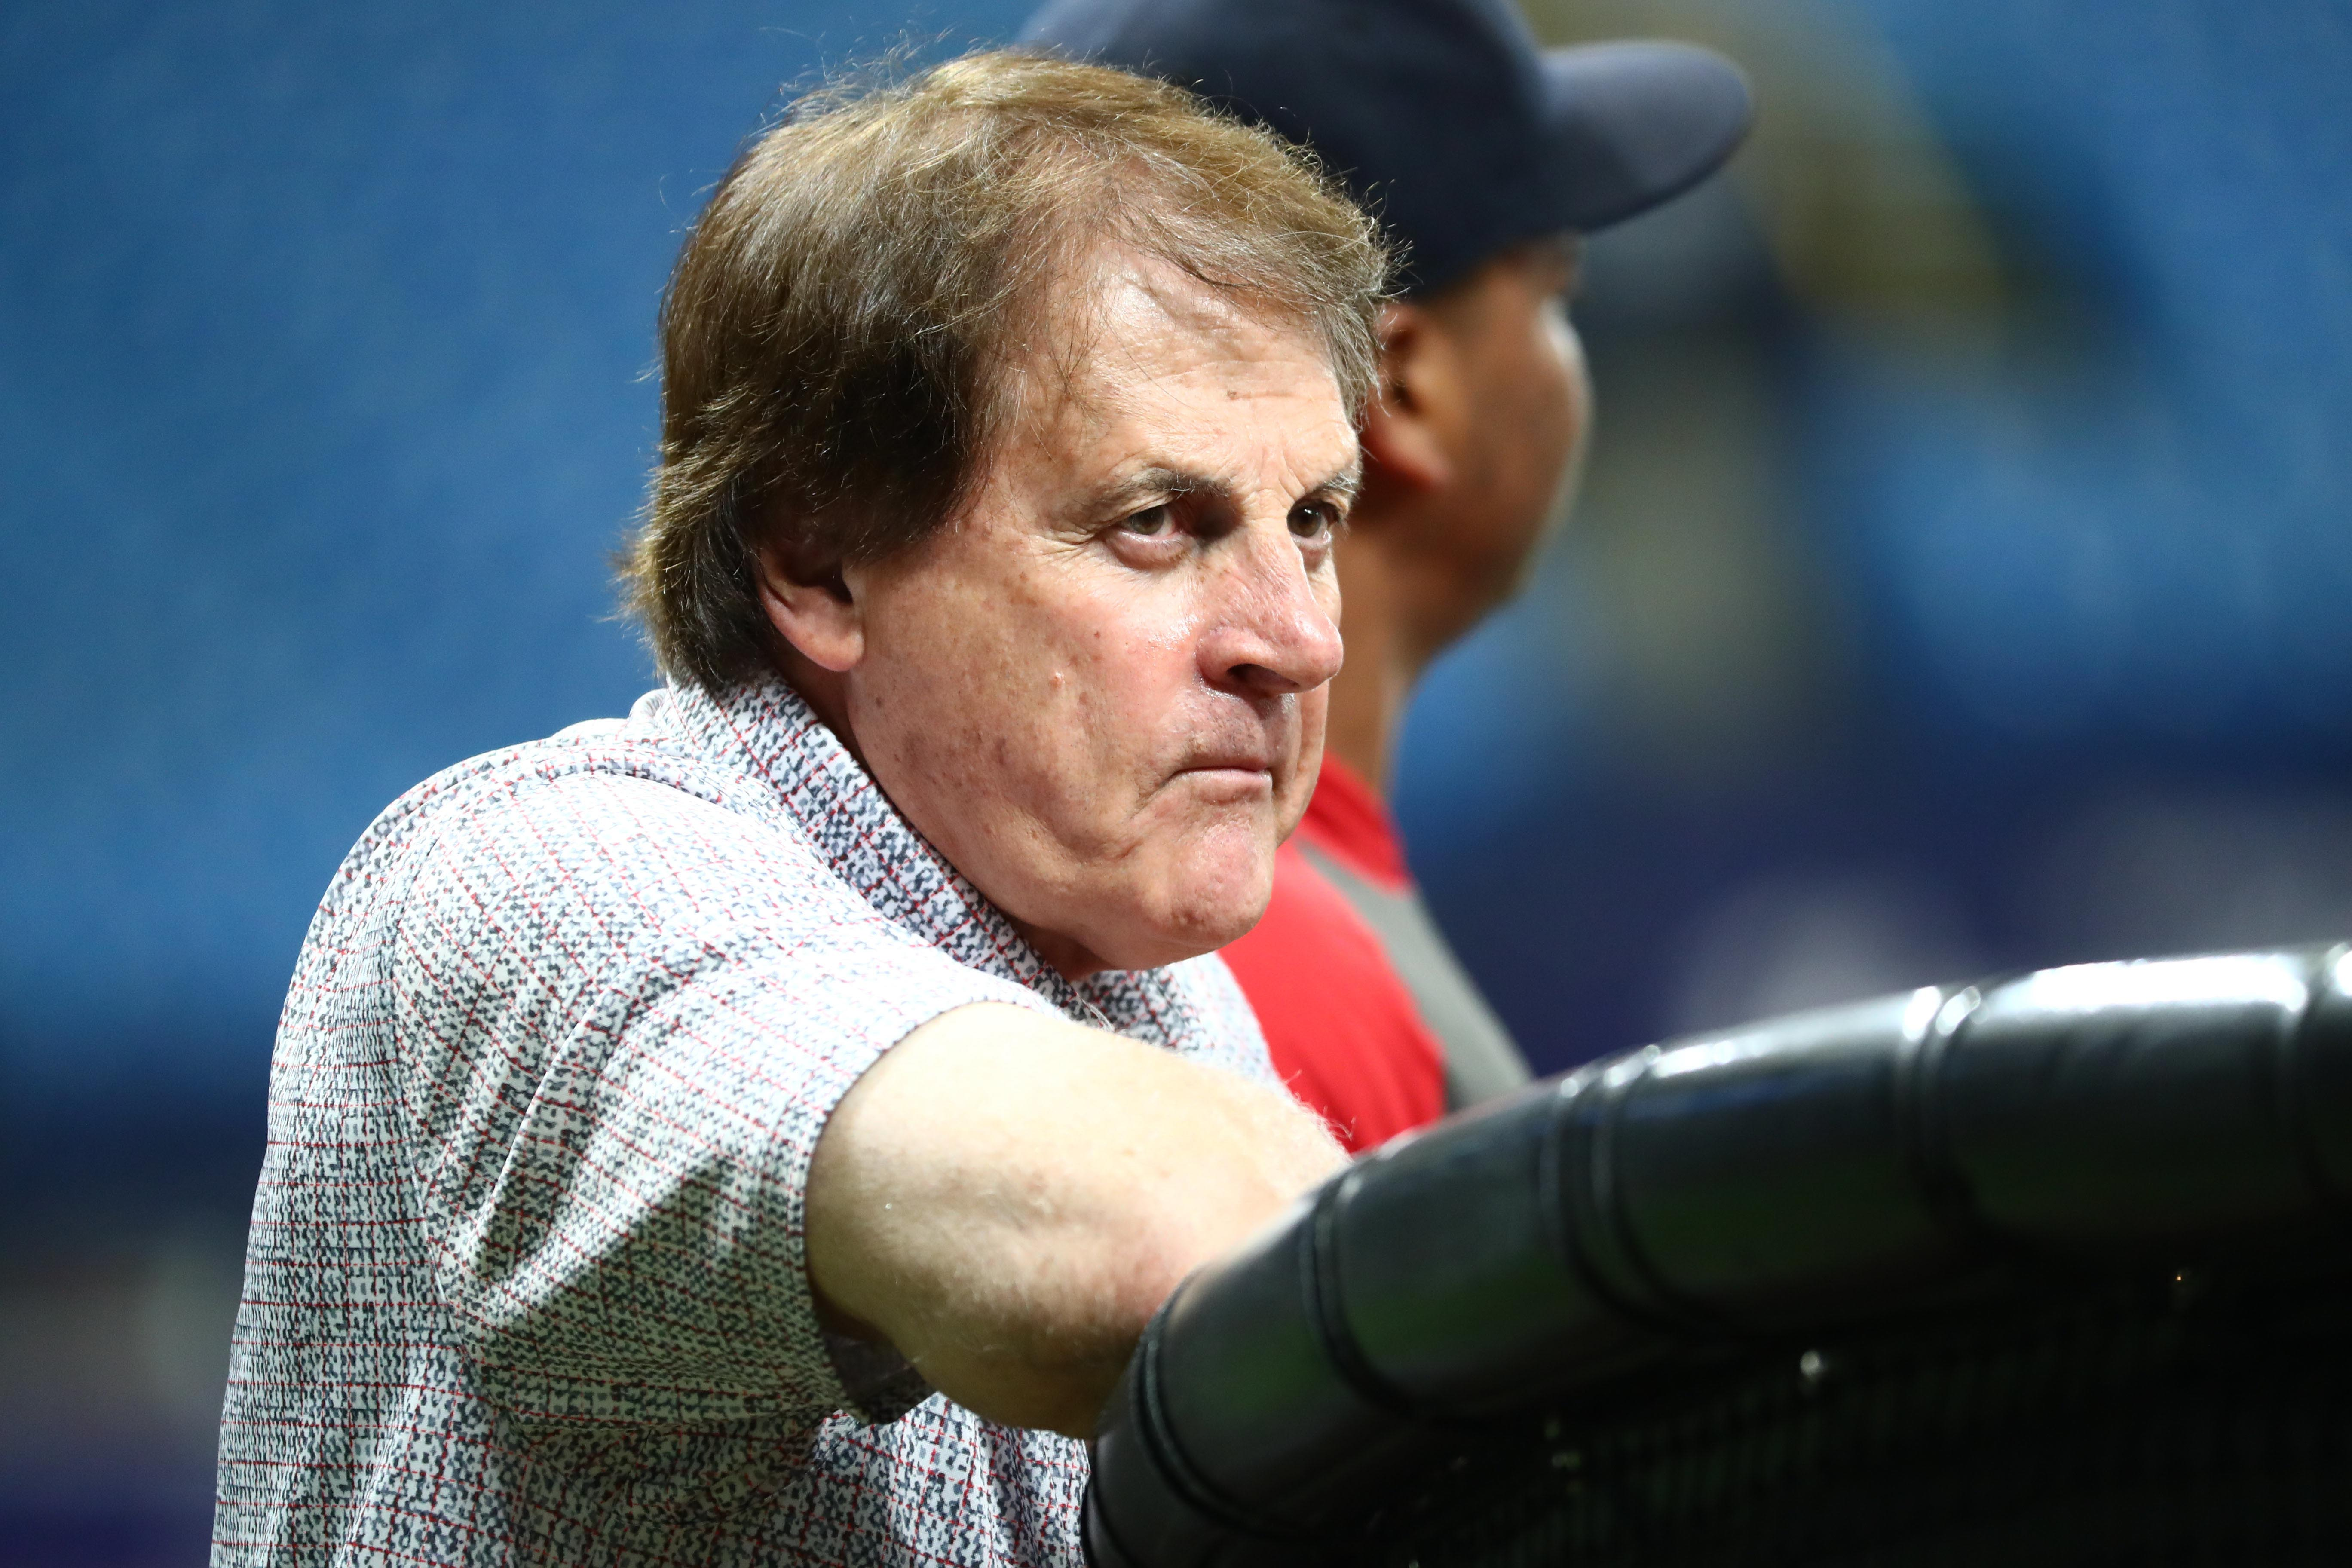 Opinion: MLB has changed since Tony La Russa left the dugout. At 76, can White Sox manager meet it halfway?